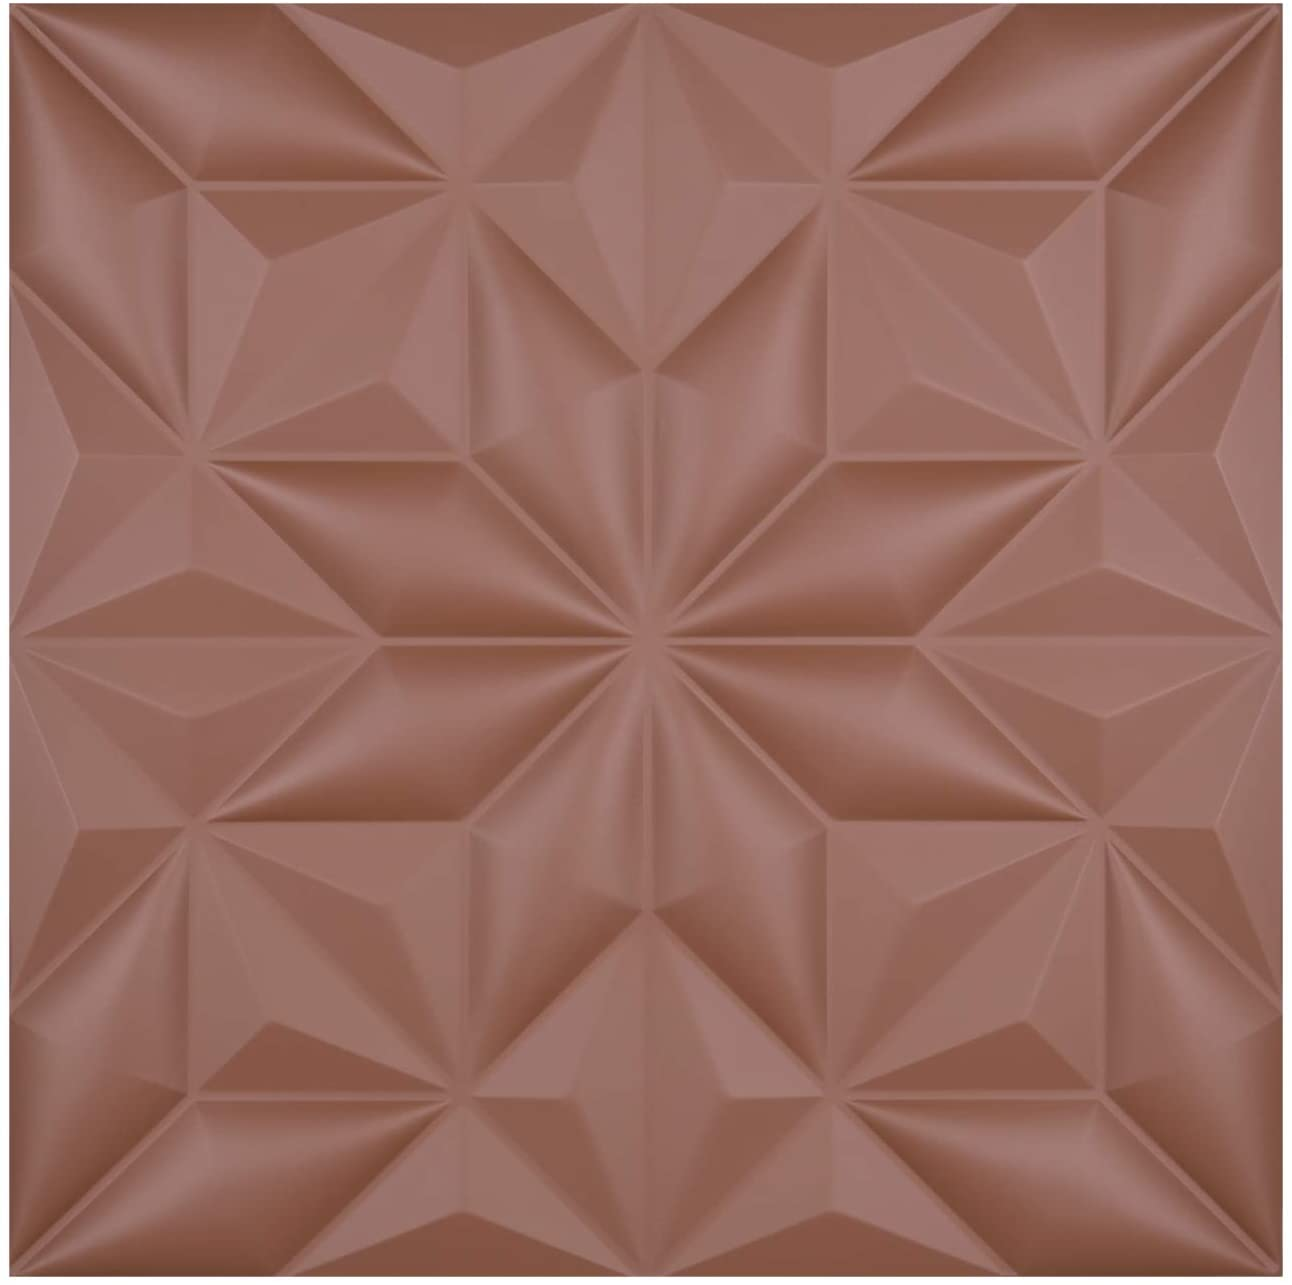 a12048-soft-leather-panel-Leather-Tiles-Decoartive-3D-Wall-Panels-Chocolate-Pyramid